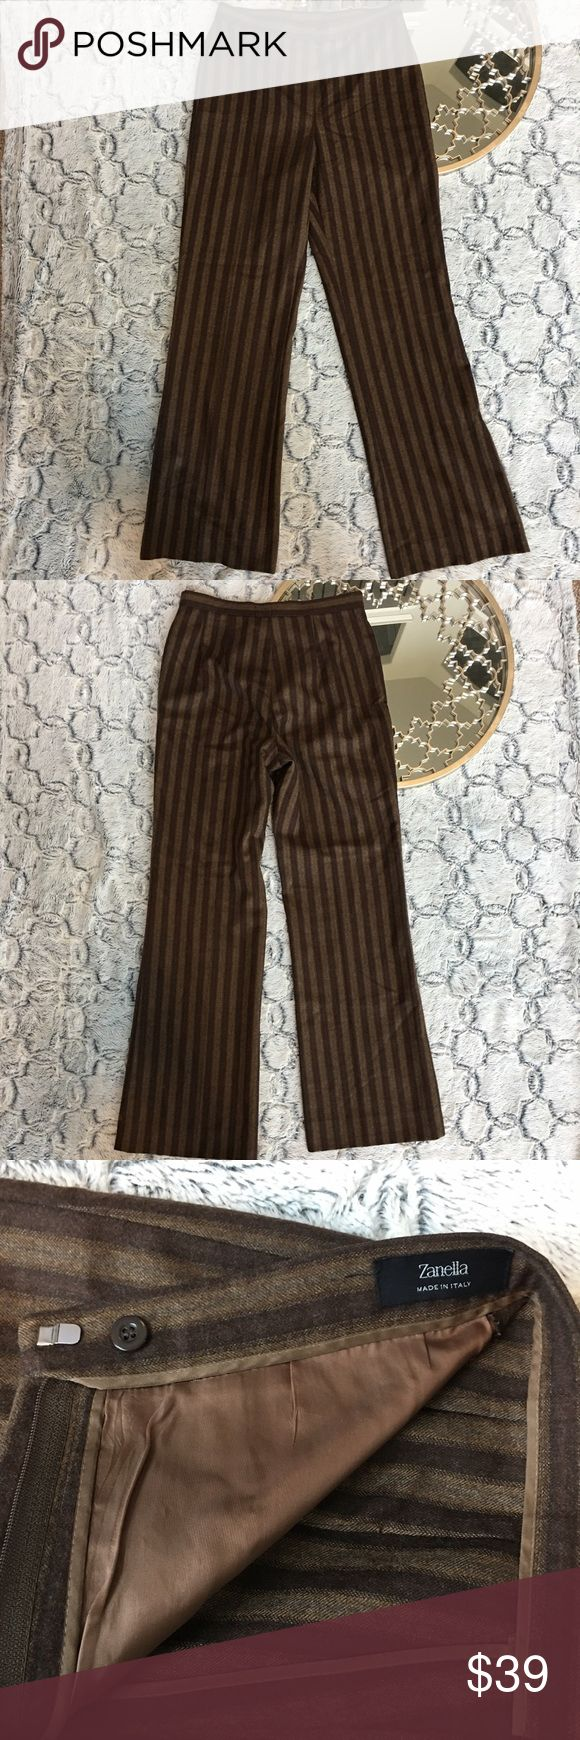 Zanella 100% Virgin Wool Women's Sz 8 Brown Slacks High waist, partial lining inside of pants. Great condition. No pockets front or back. Zanella Pants Trousers